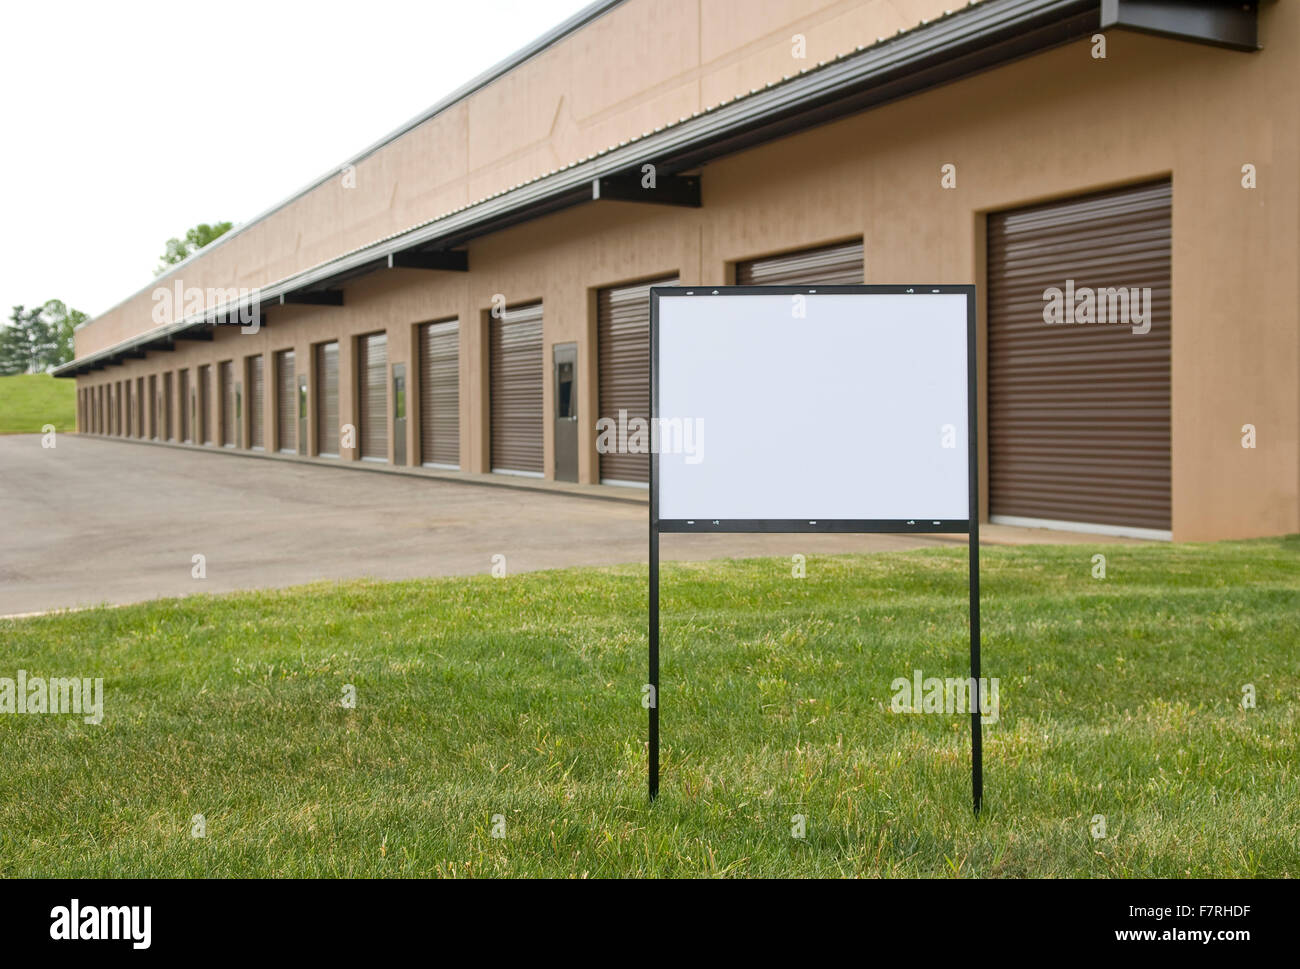 exterior industrial warehouse building in stock photos exterior industrial warehouse building. Black Bedroom Furniture Sets. Home Design Ideas